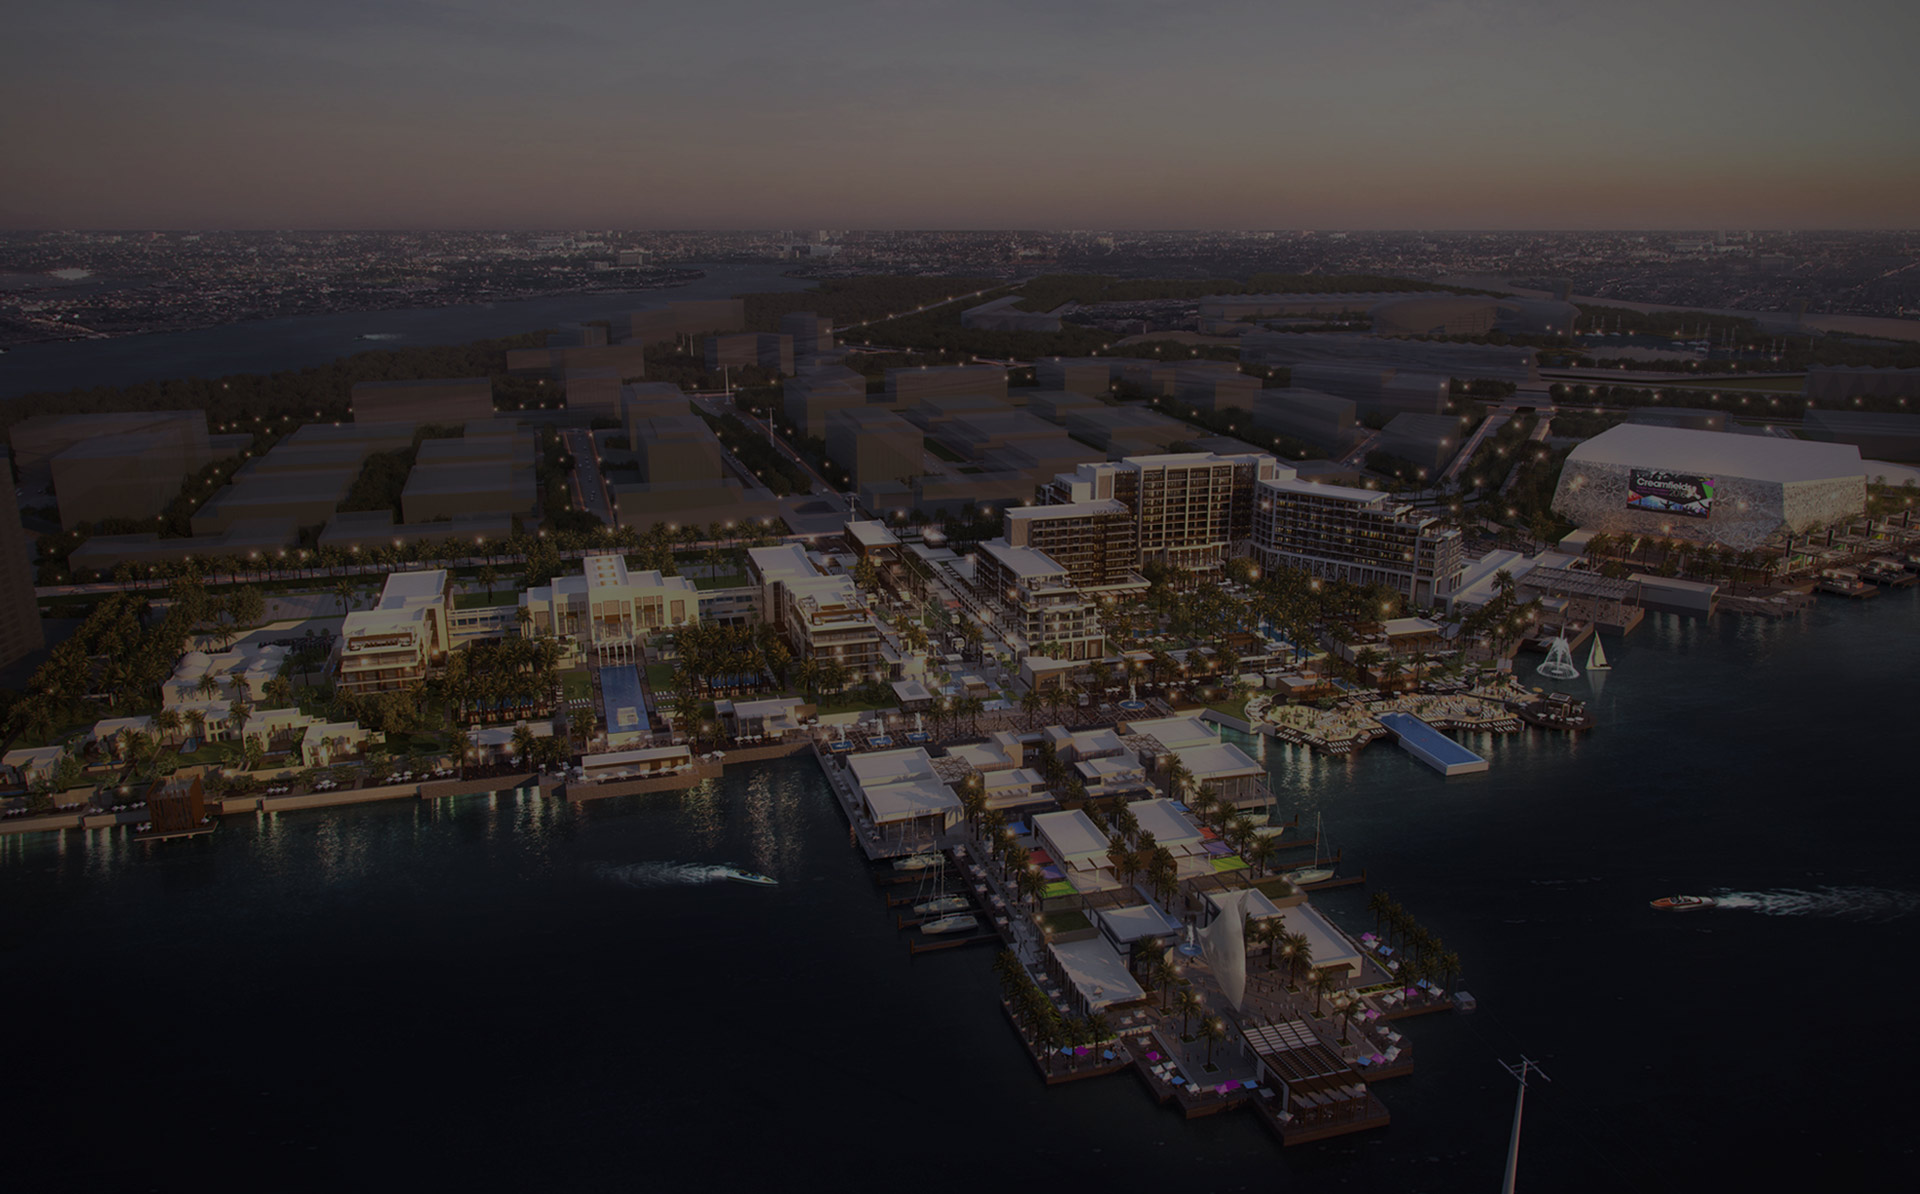 An overview render of the entire Yas Resort and Yas Arena master plan including the hotels and promenade and pier.